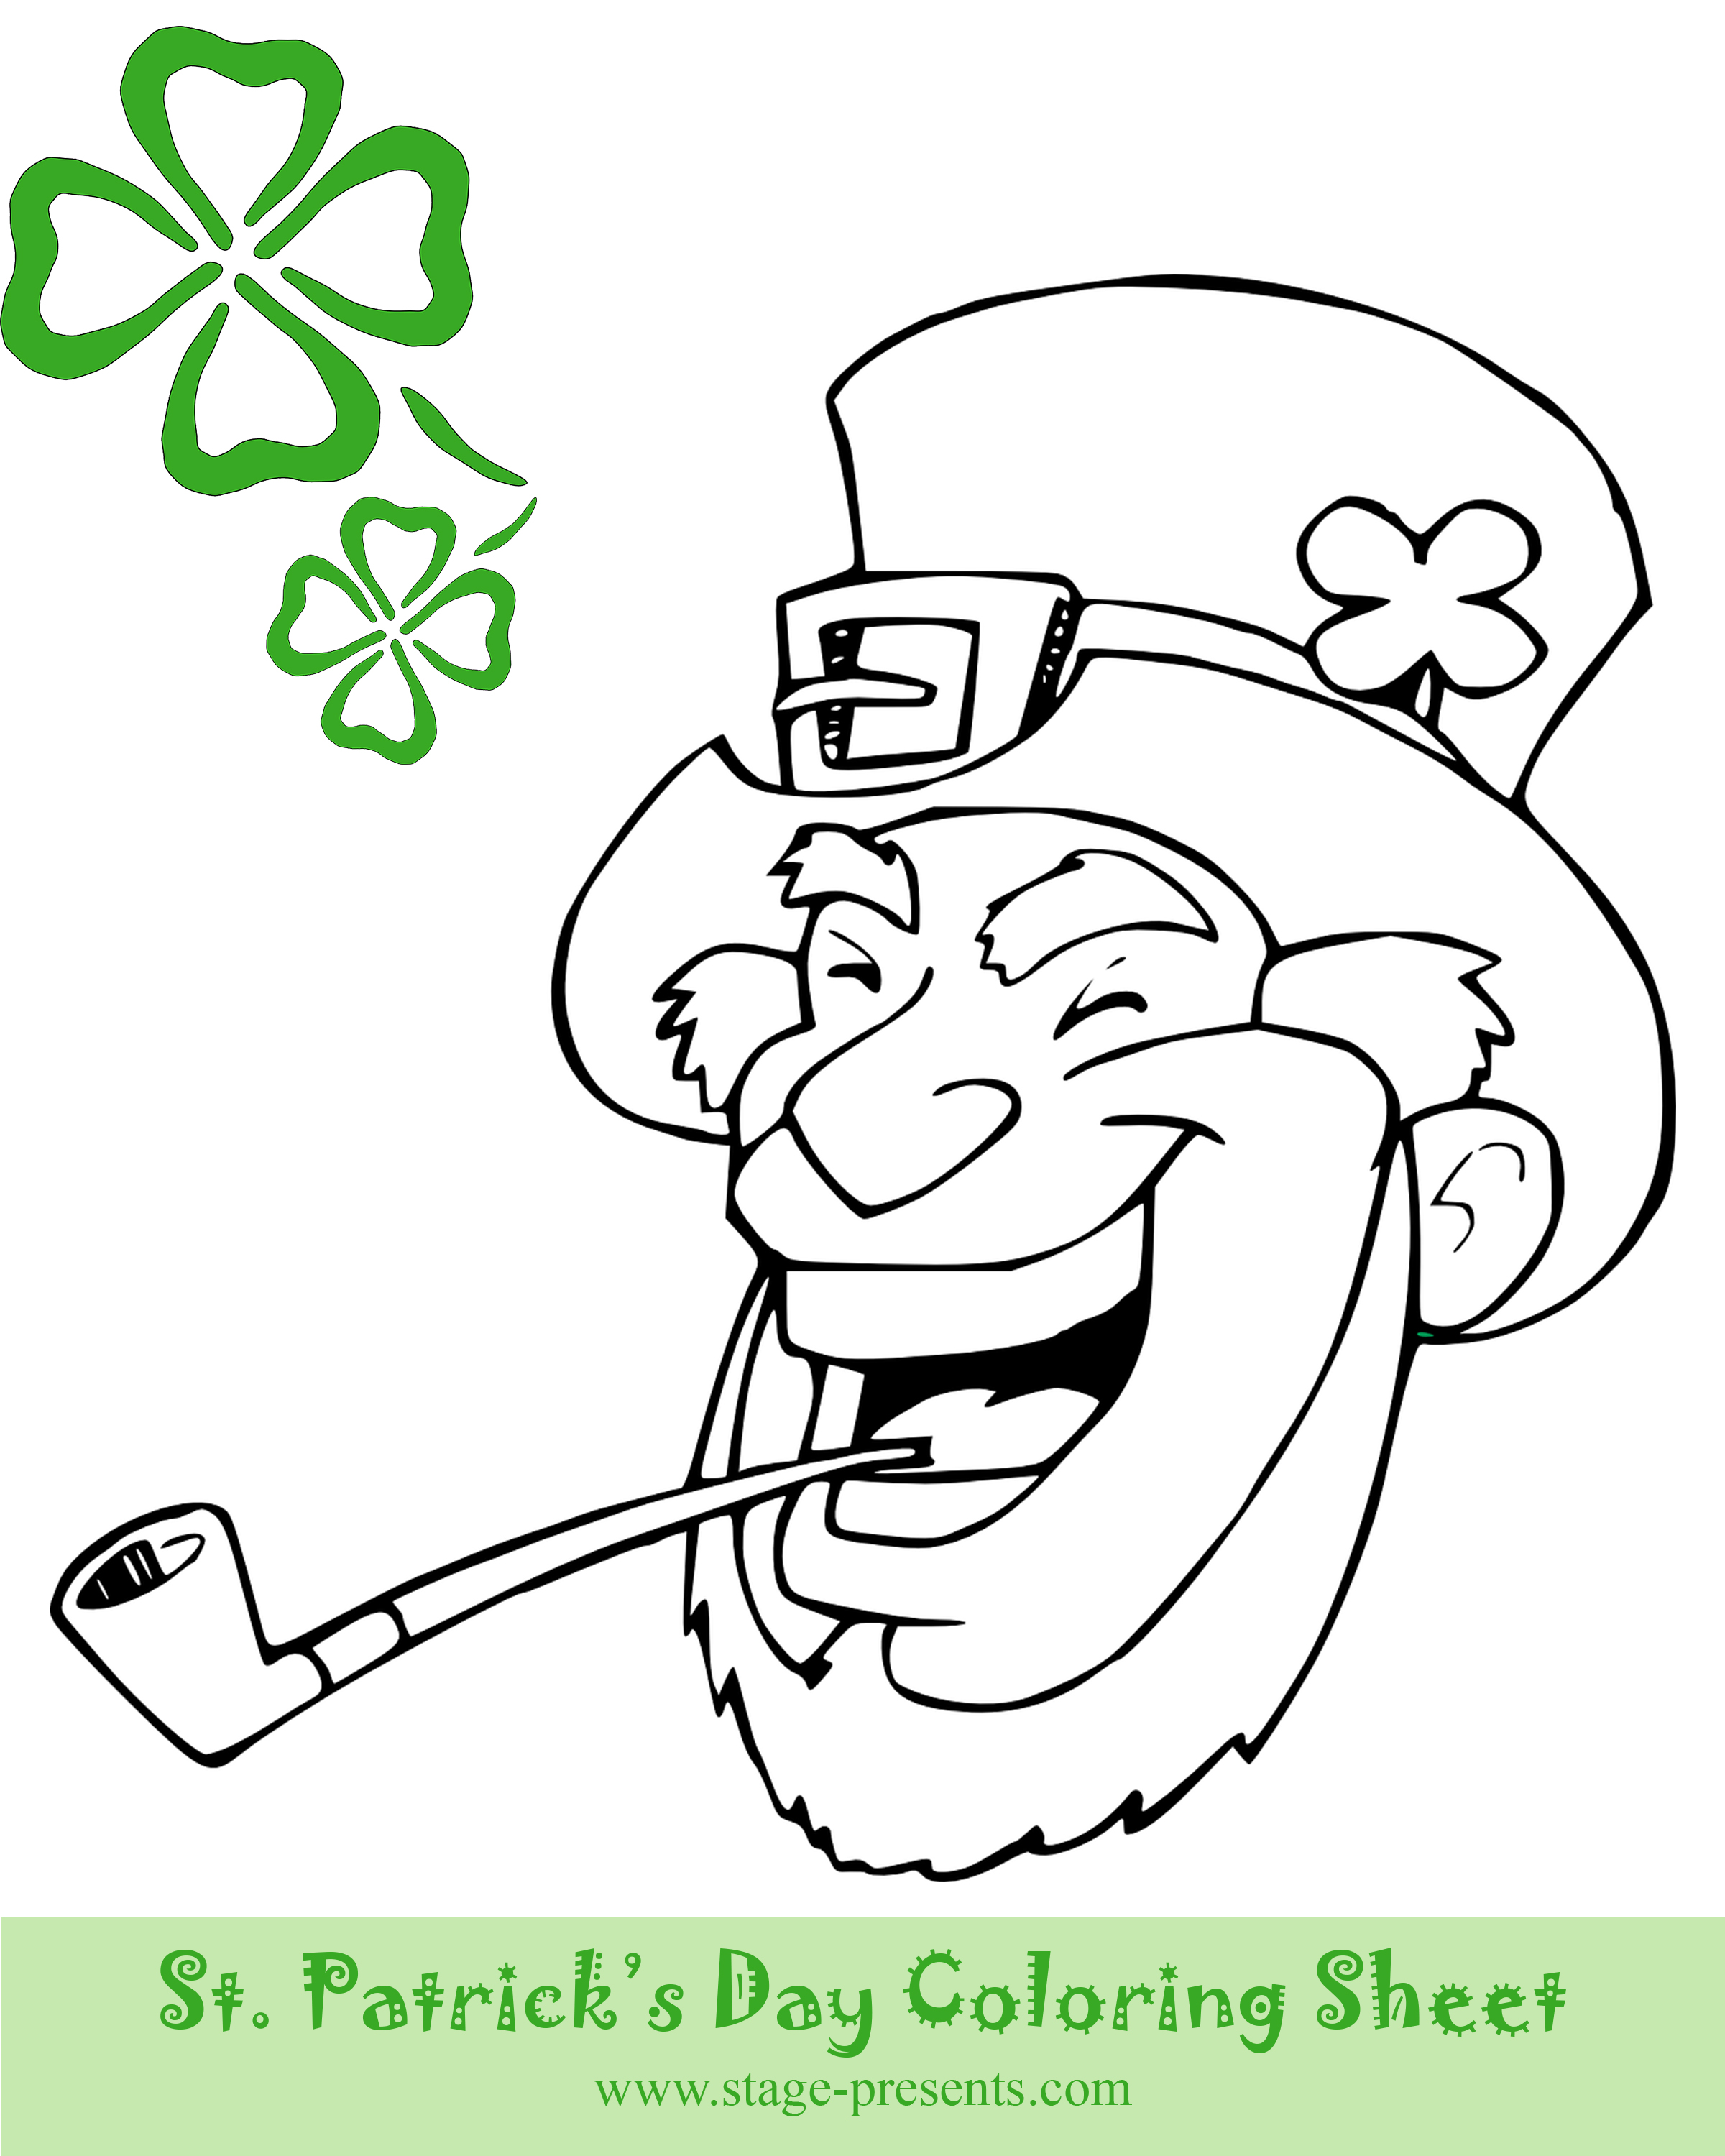 Two Free St. Patrick\'s Day Coloring Sheets - Stage Presents